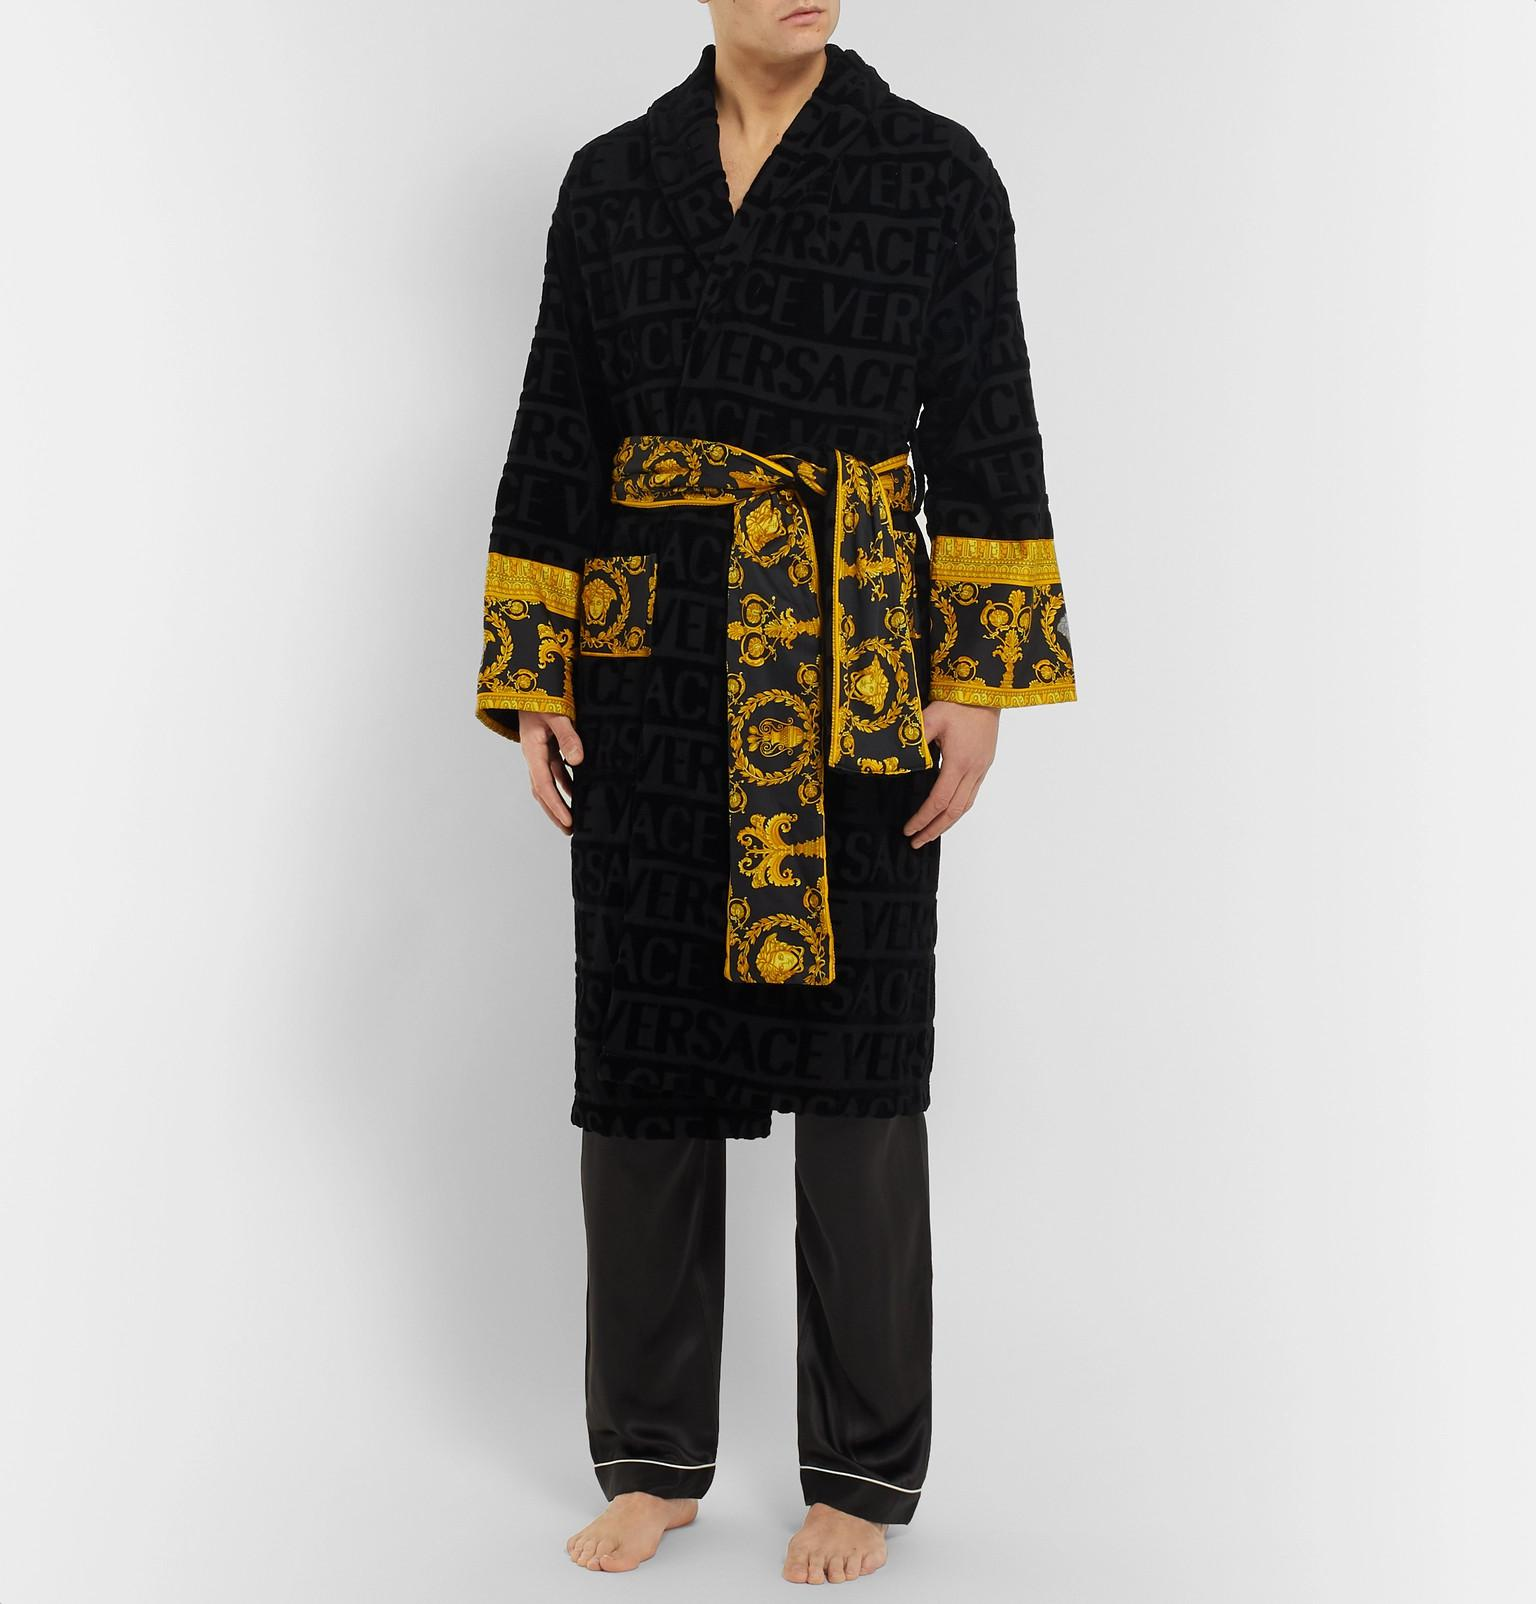 a140631837 Versace Poplin-panelled Logo-jacquard Cotton-terry Robe in Black for ...